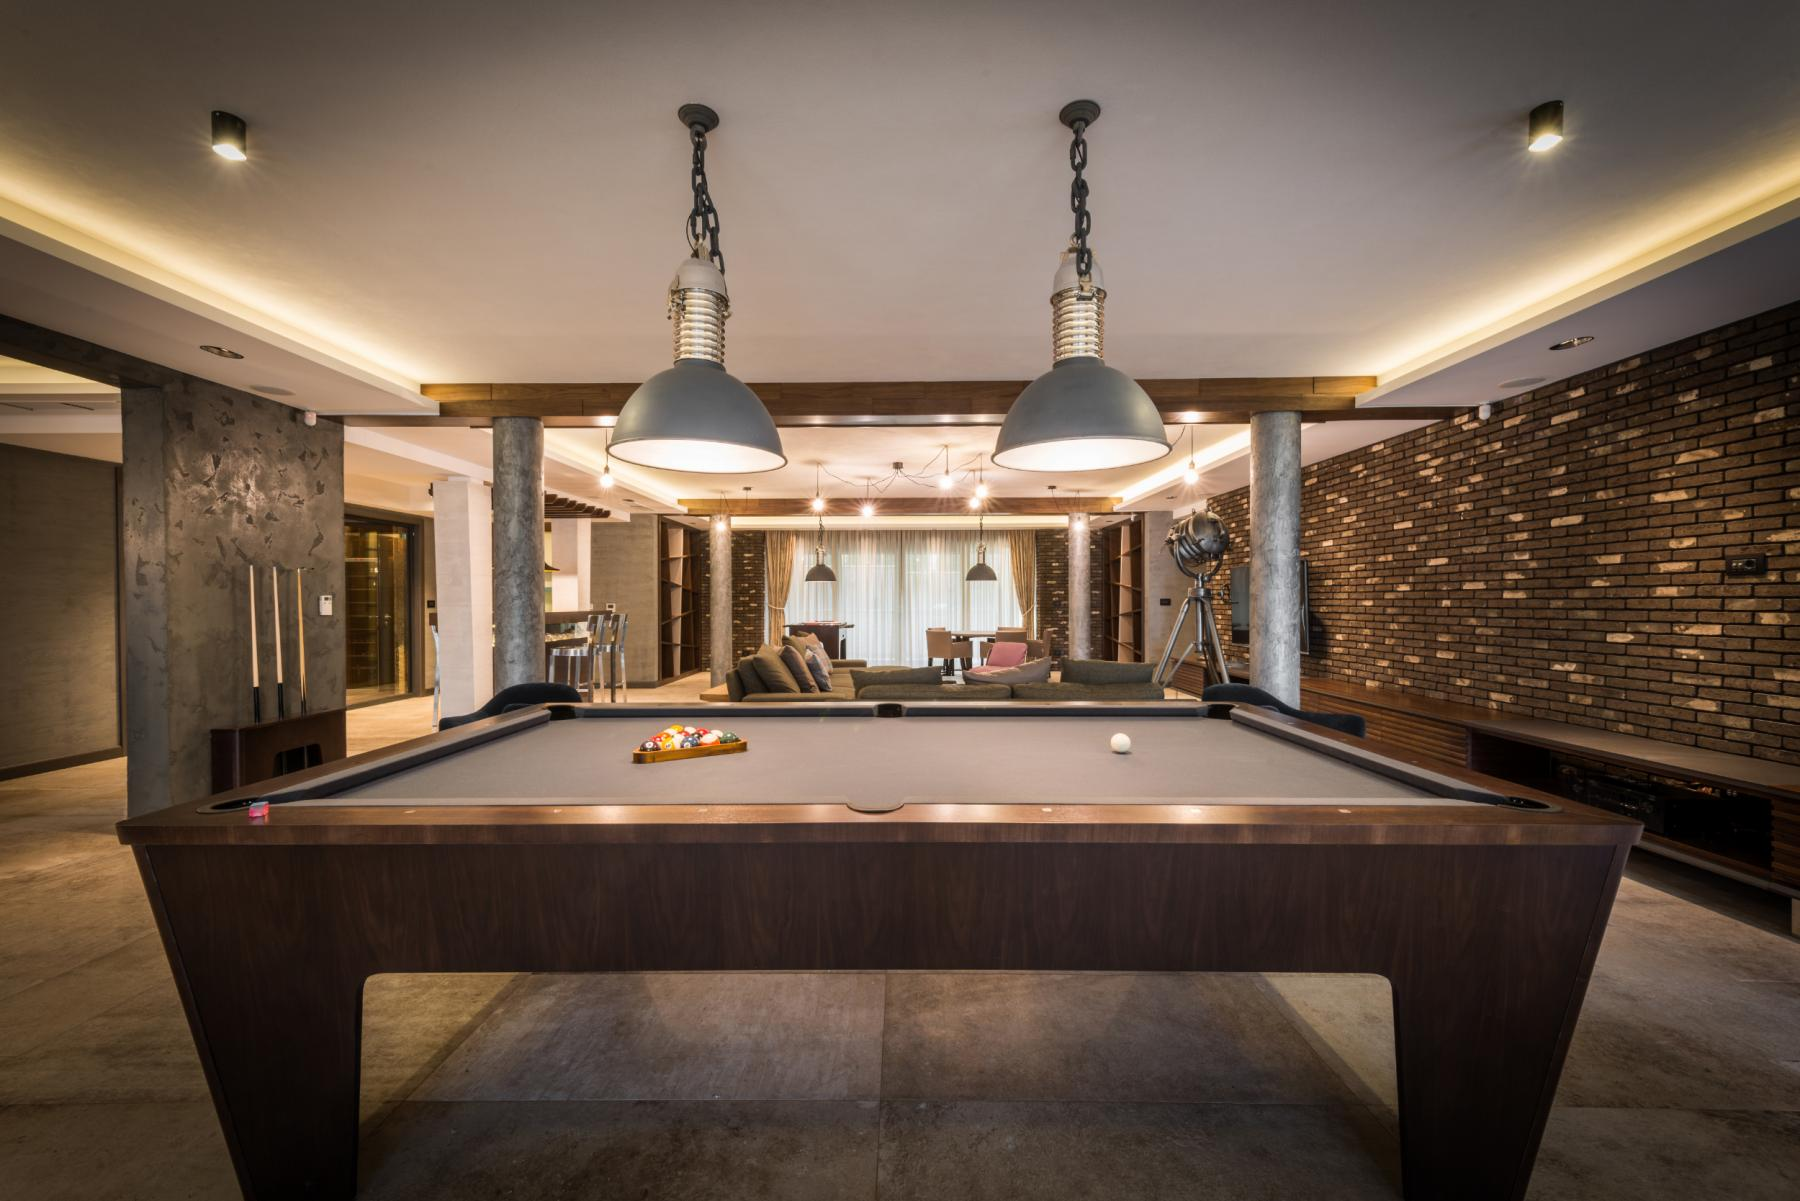 Have a pool competition with your colleagues during your breaks